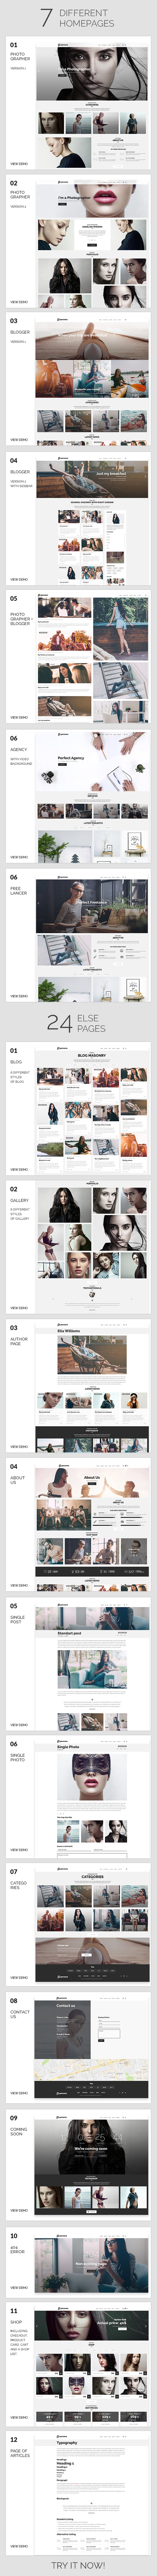 Photography Persona | Photography WordPress for Photography - 5